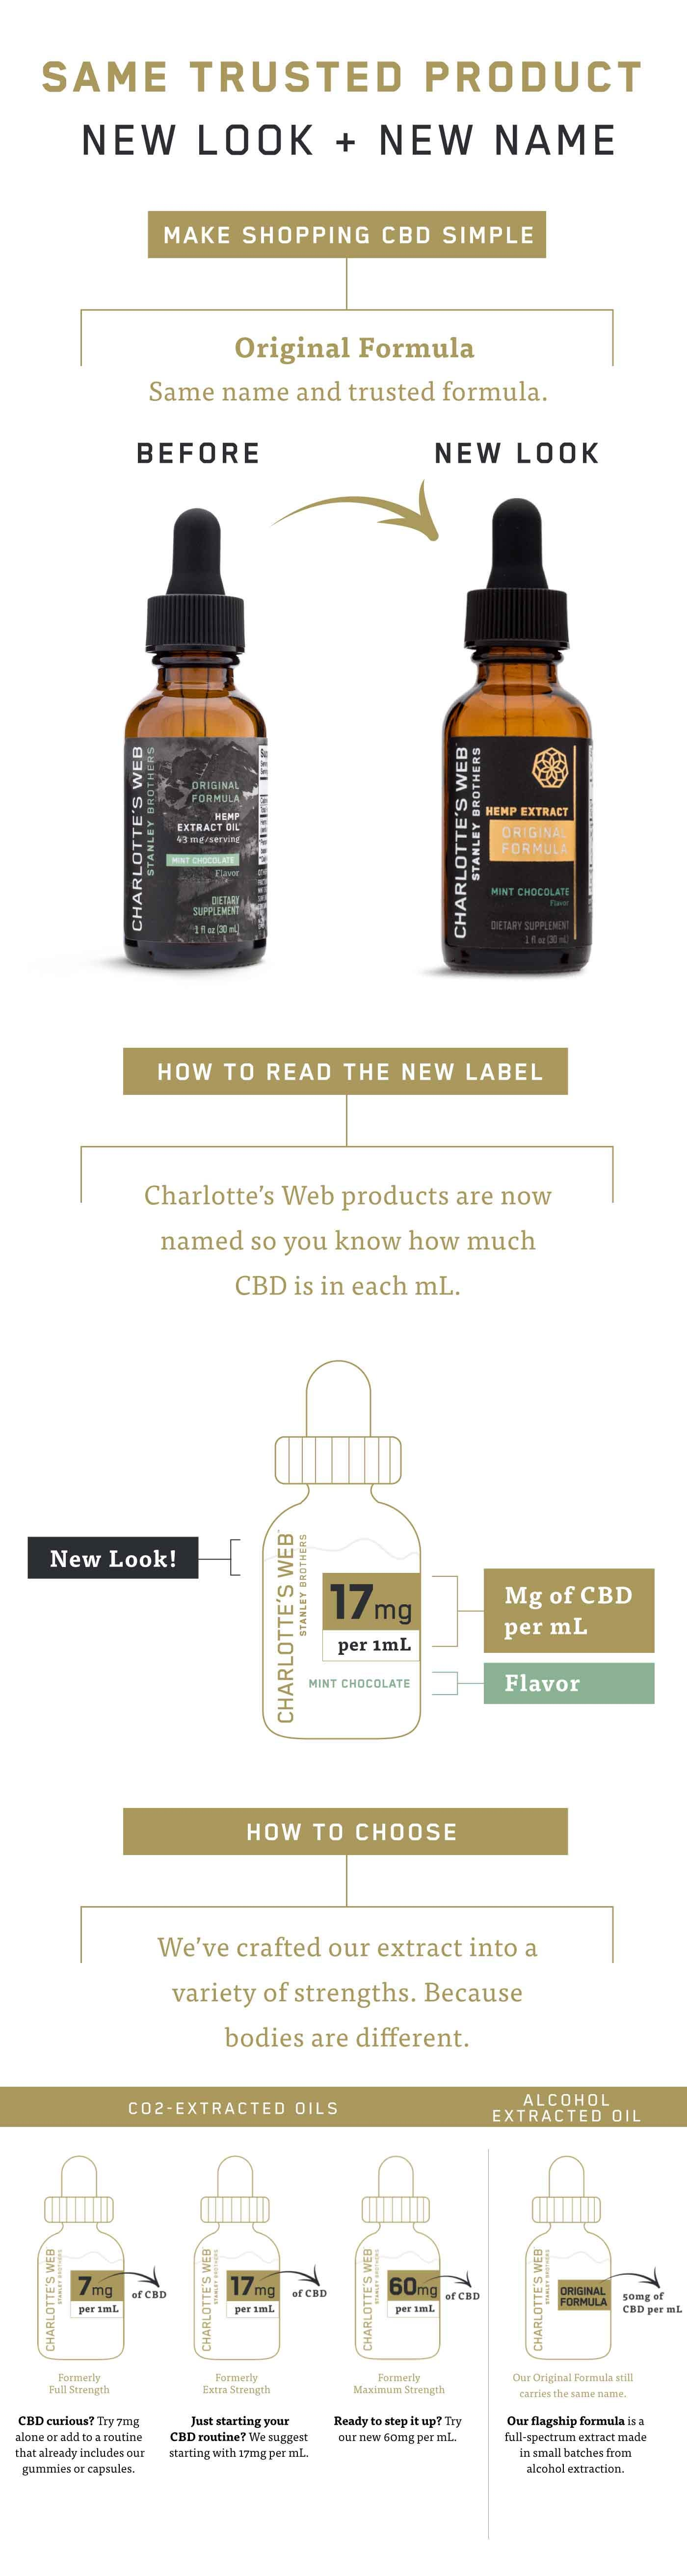 Charlotte's Web: New naming convention for simplified CBD shopping.